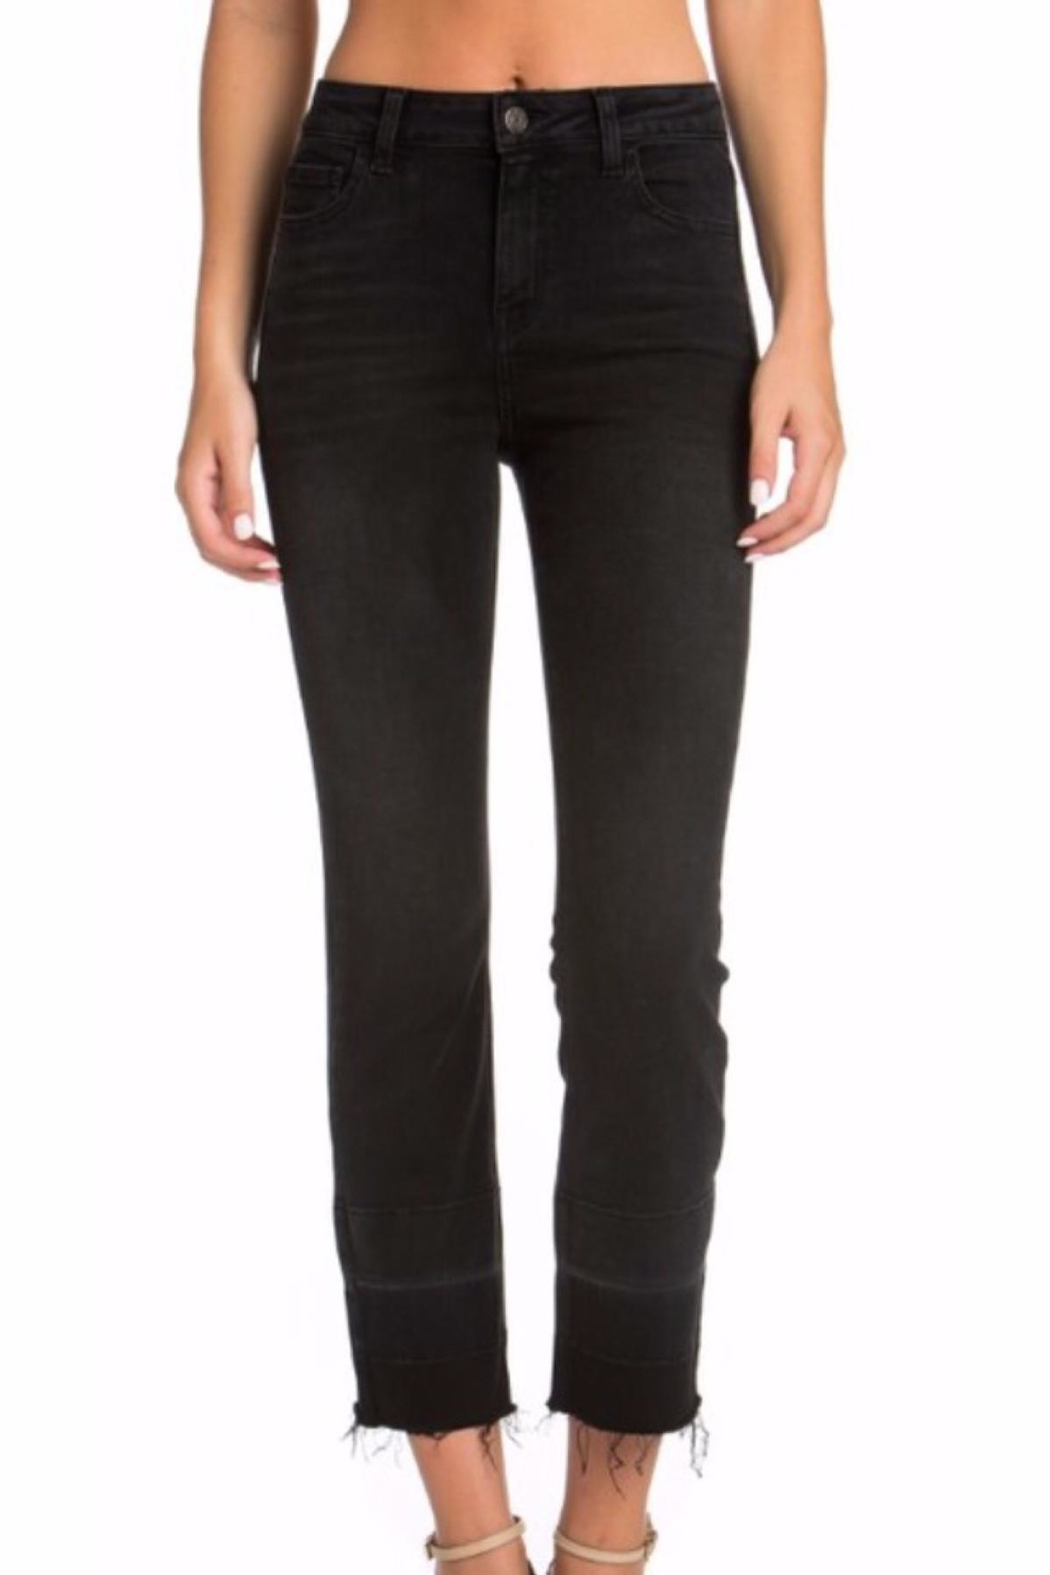 Cello Jeans Black Wash Jeans - Main Image